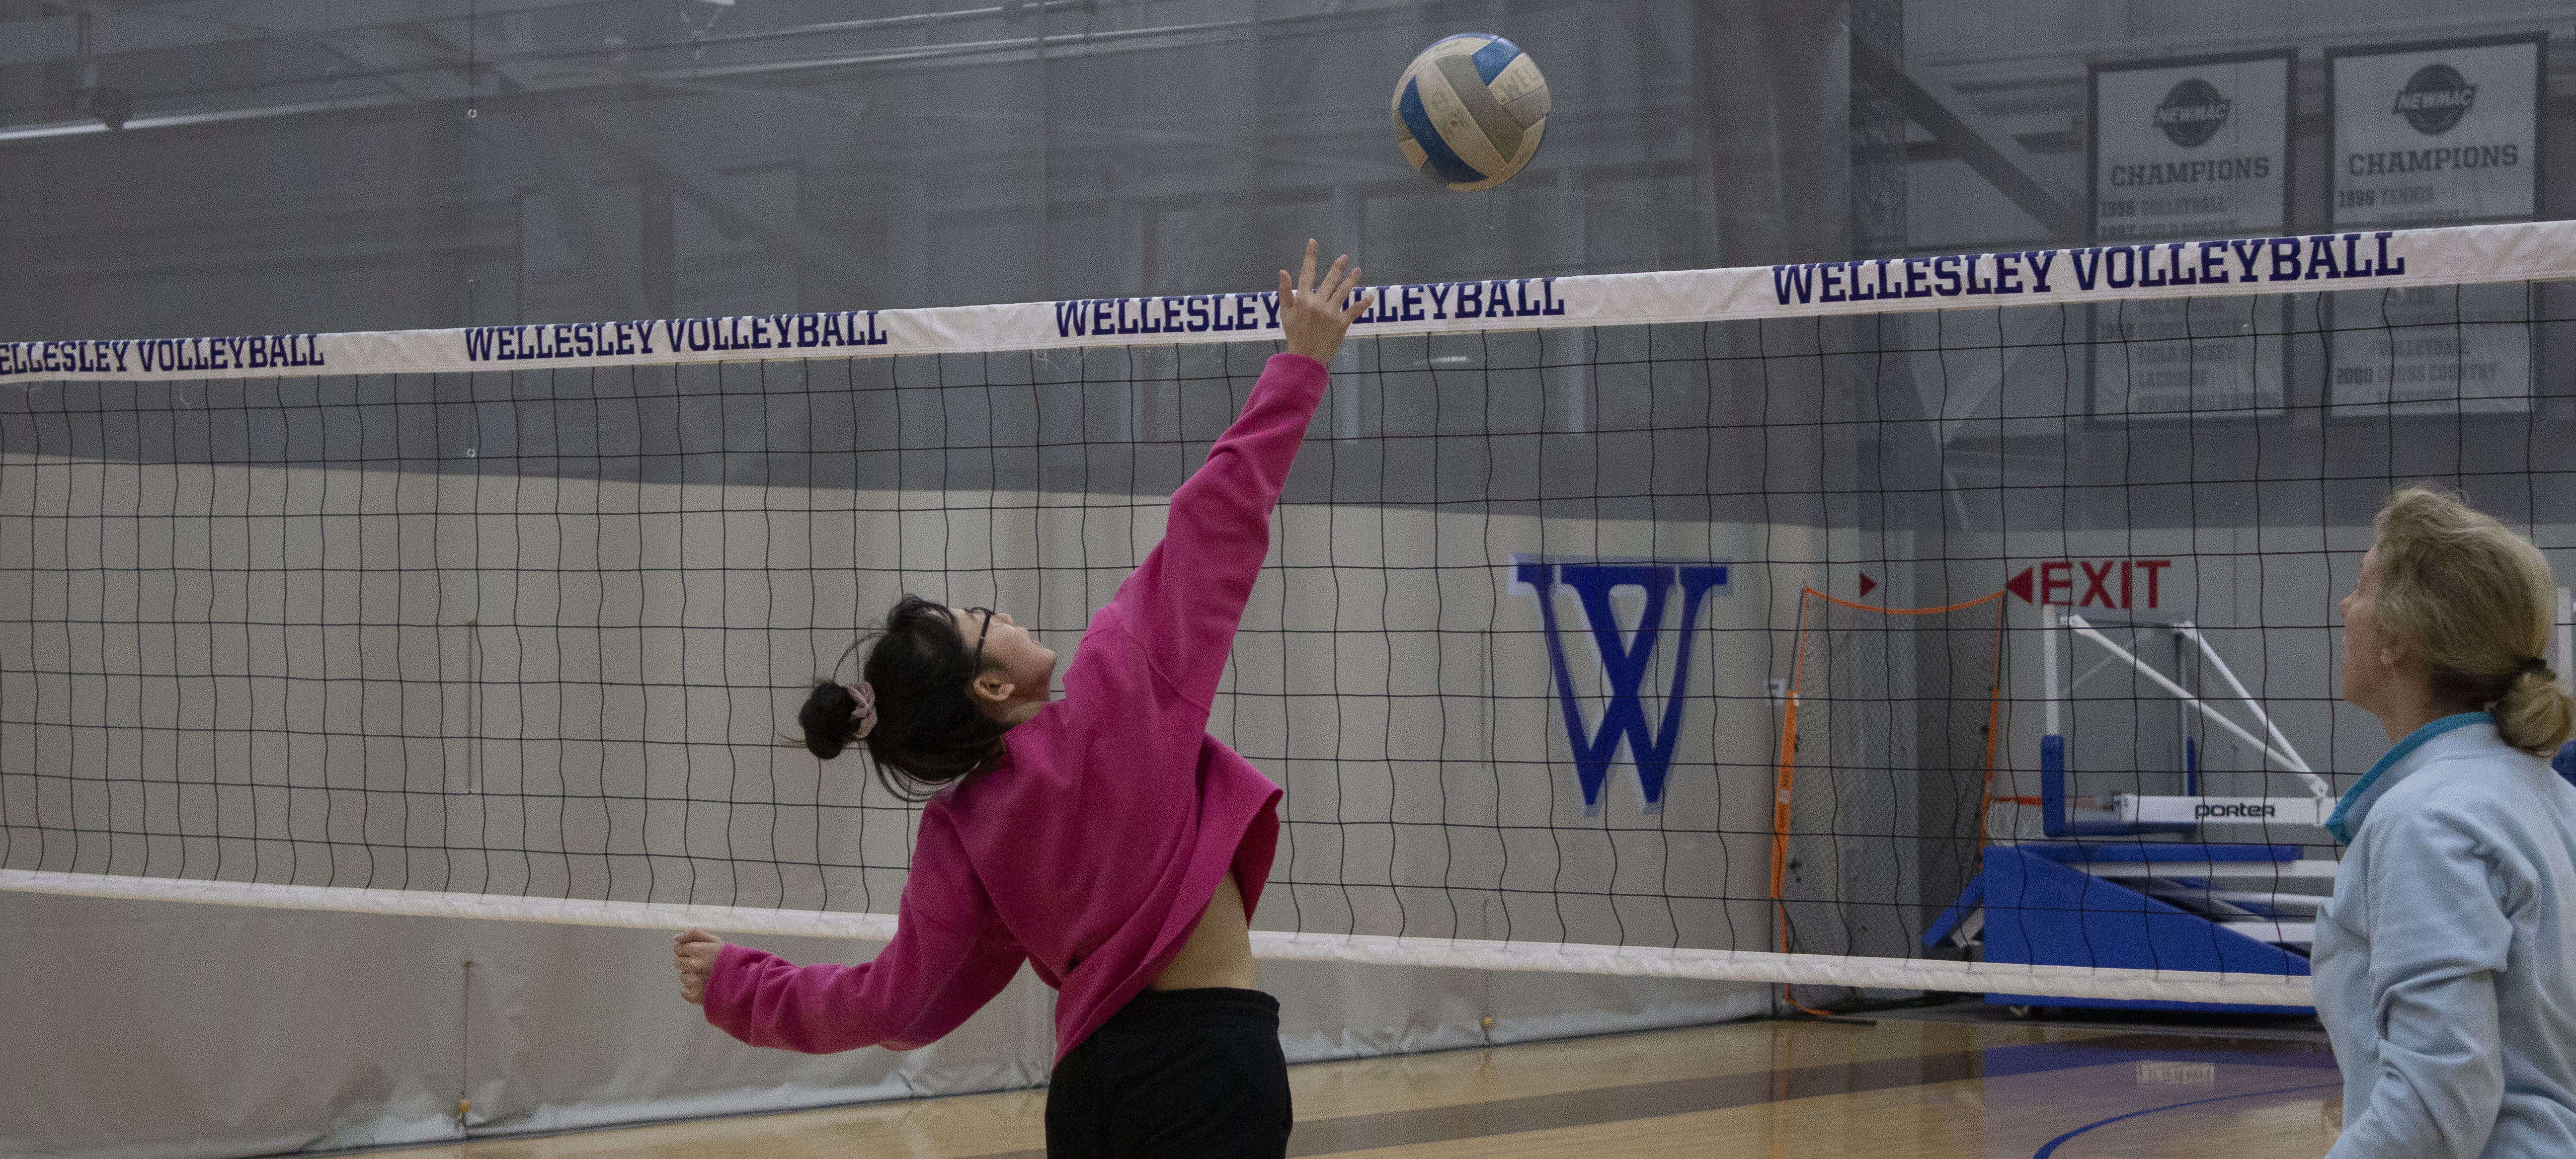 A student in front of a volleyball net with a centered blue W, throws a volleyball into the air to spike it. Their coach watches